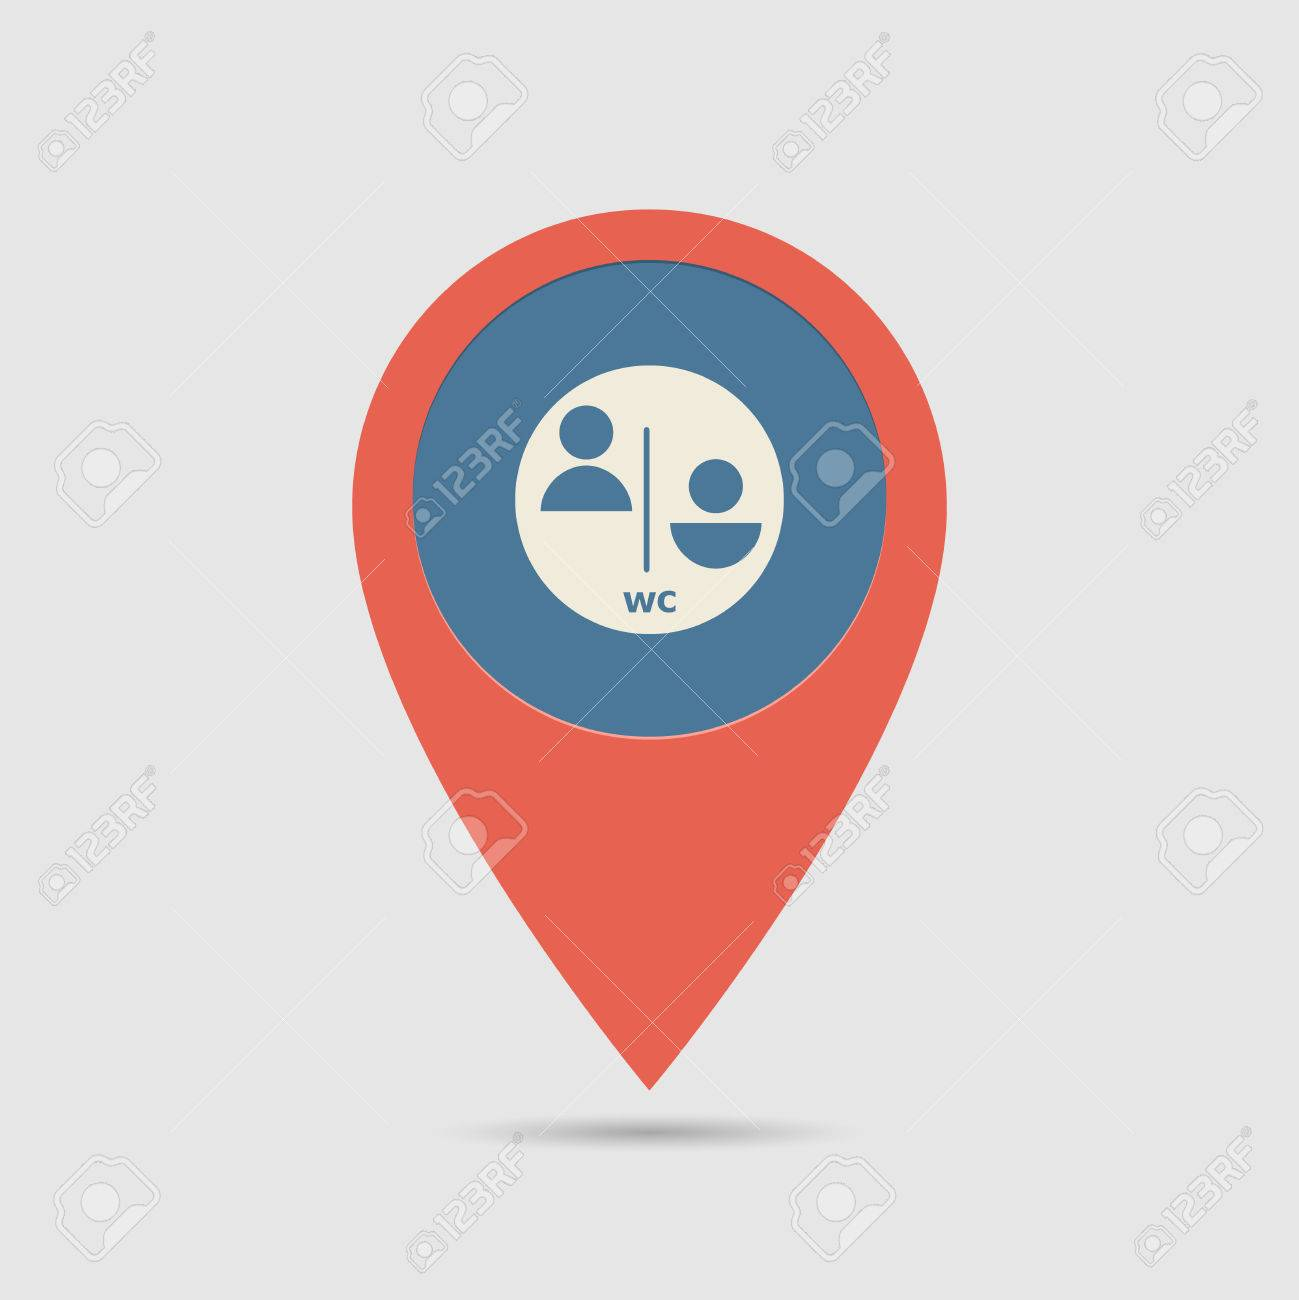 Pin Several Locations On A Map on multiple locations on map, pinpoint locations on a map, philadelphia location on a map,